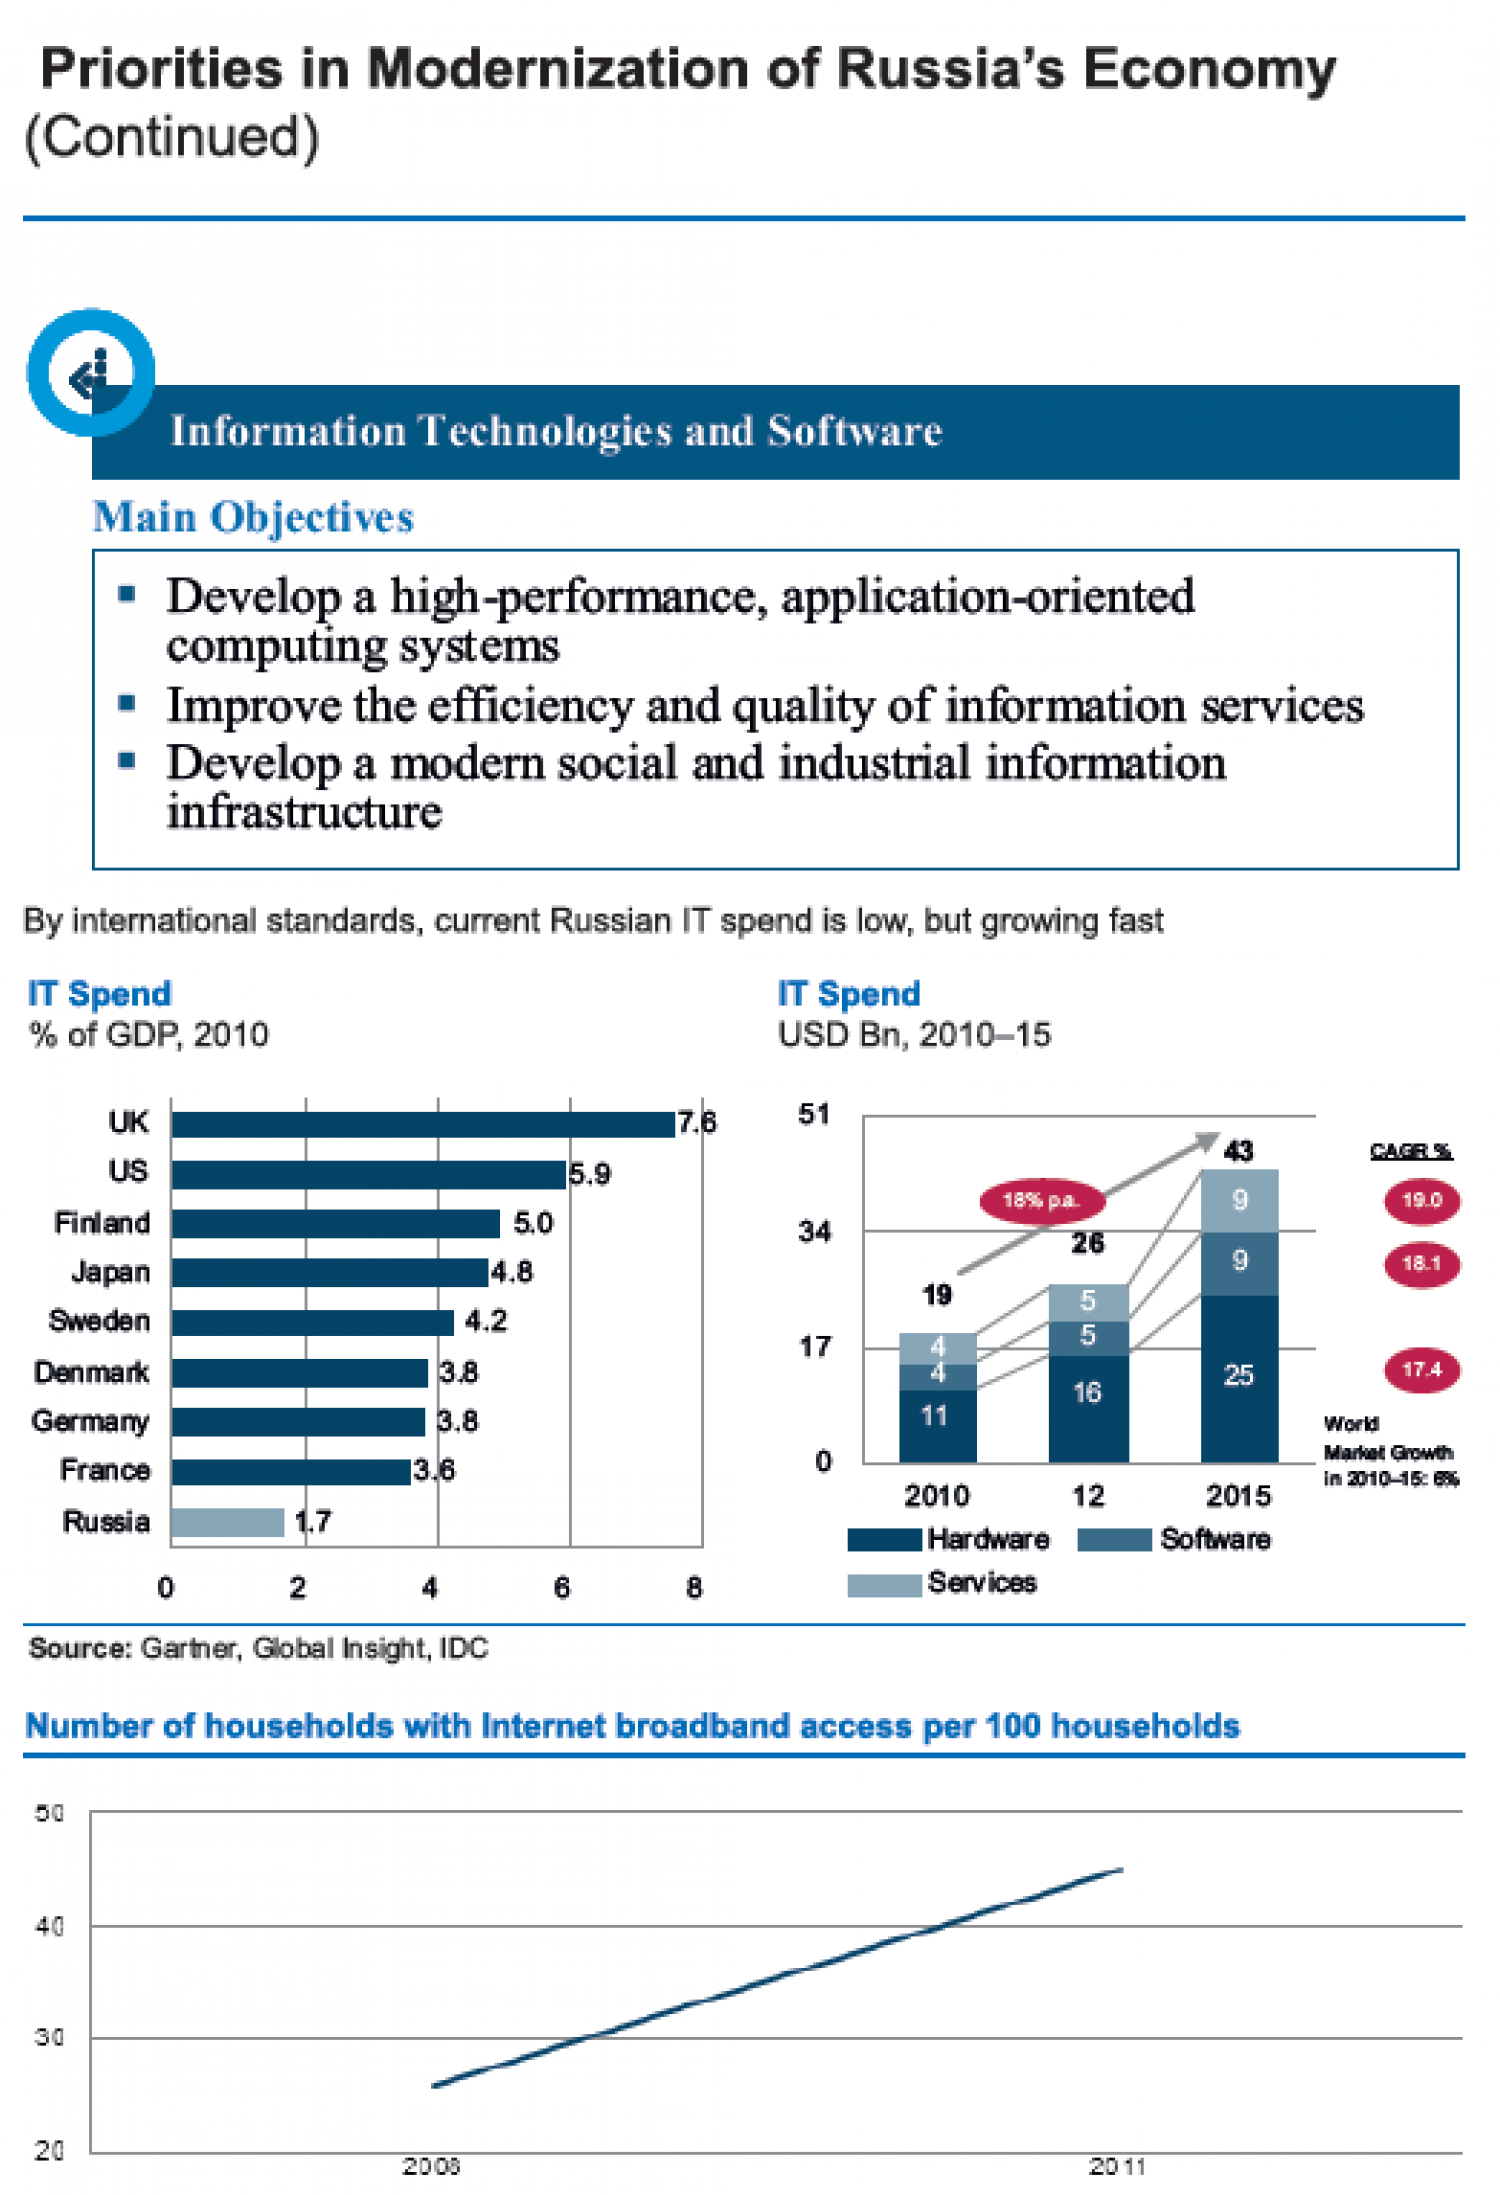 Russian Federation (INFORMATION TECHNOLOGIES & SOFTWARE) : Priorities in Modernization of Russia's Economy   Infographic